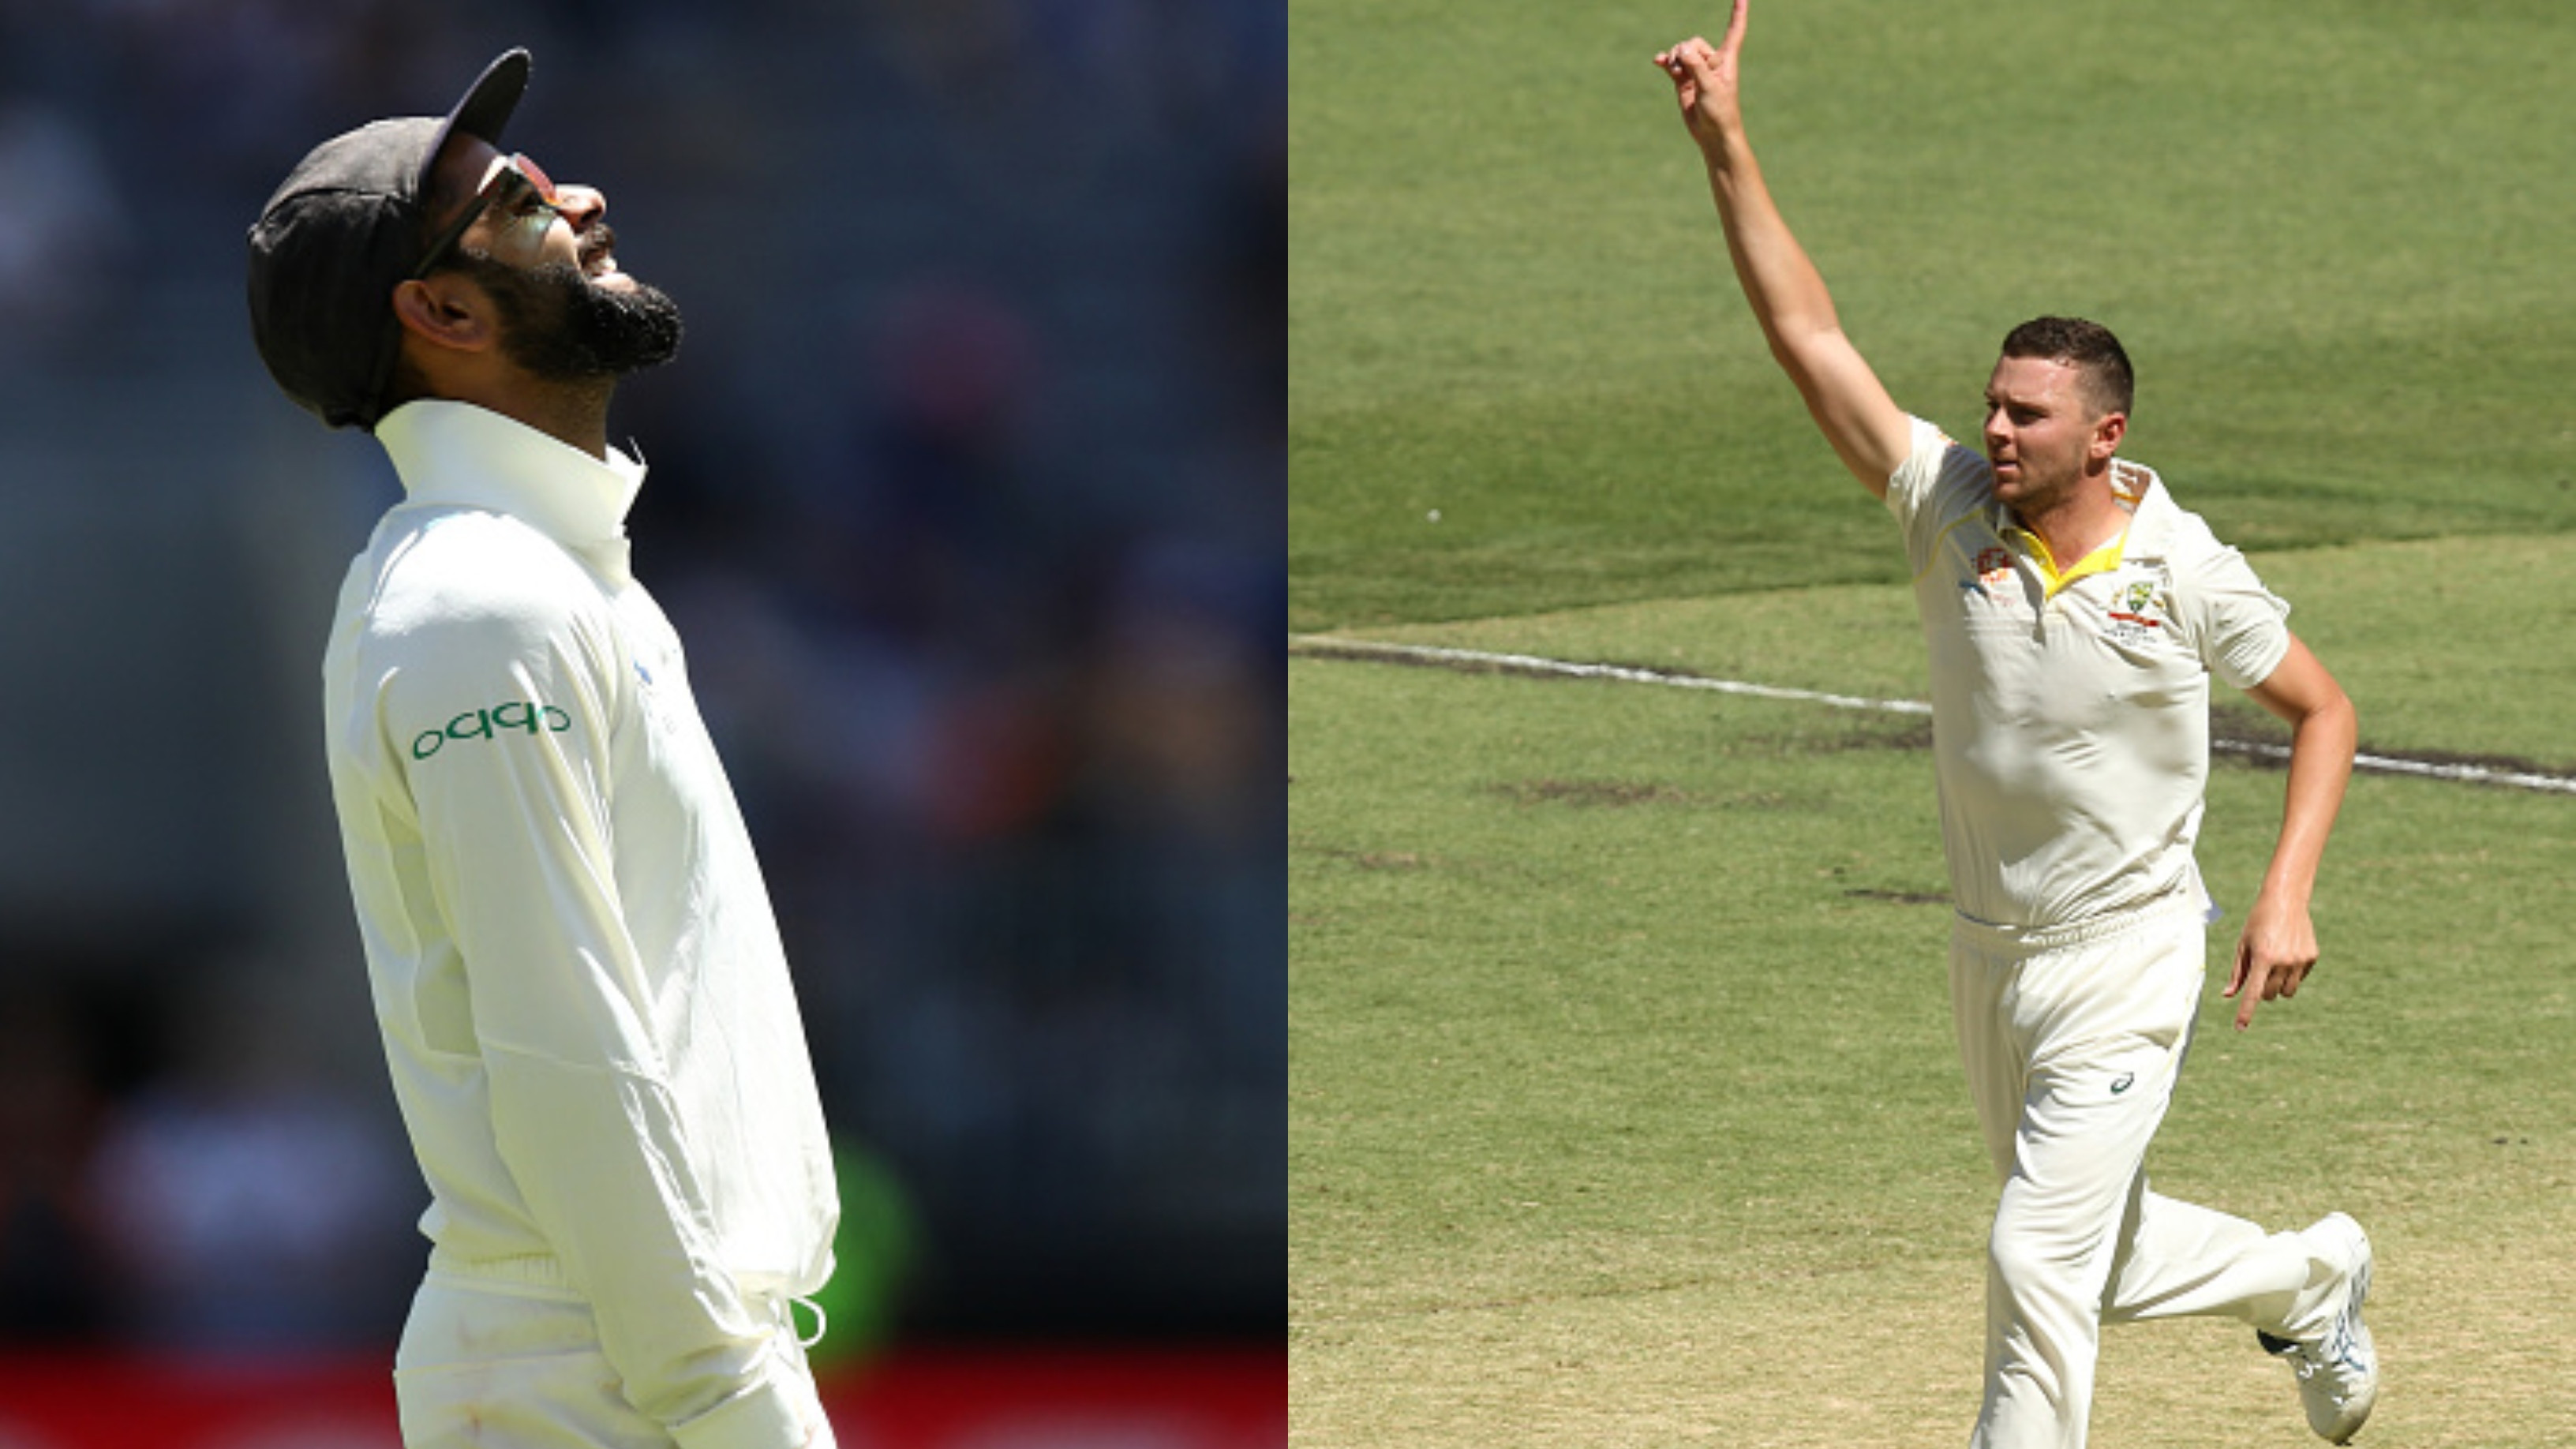 AUS v IND 2018-19: Josh Hazlewood says Virat Kohli is not his main target in the Test series